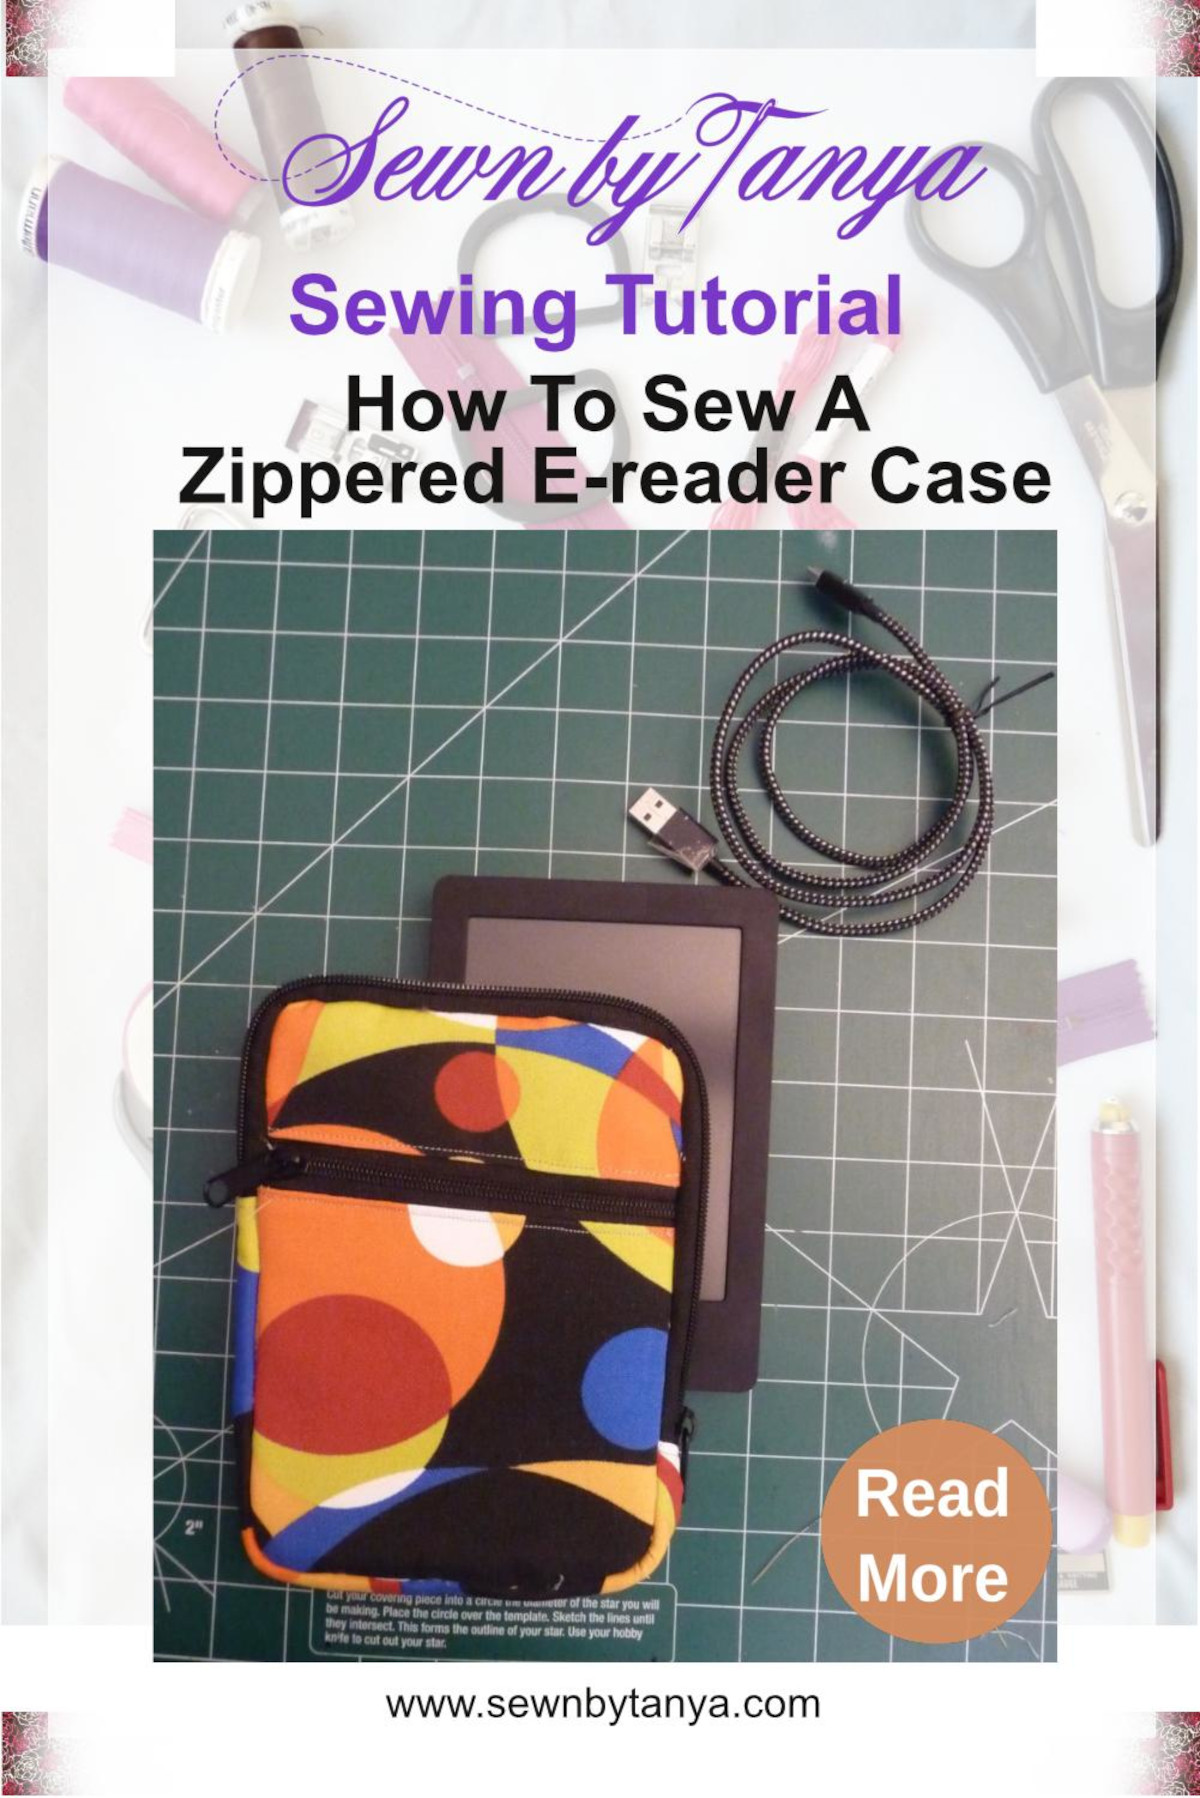 """""""Sewn By Tanya Sewing Tutorial: How To Sew A Zippered E-reader Case"""" shows a multicolored e-reader case overlapping an e-reader and an e-reader cable"""